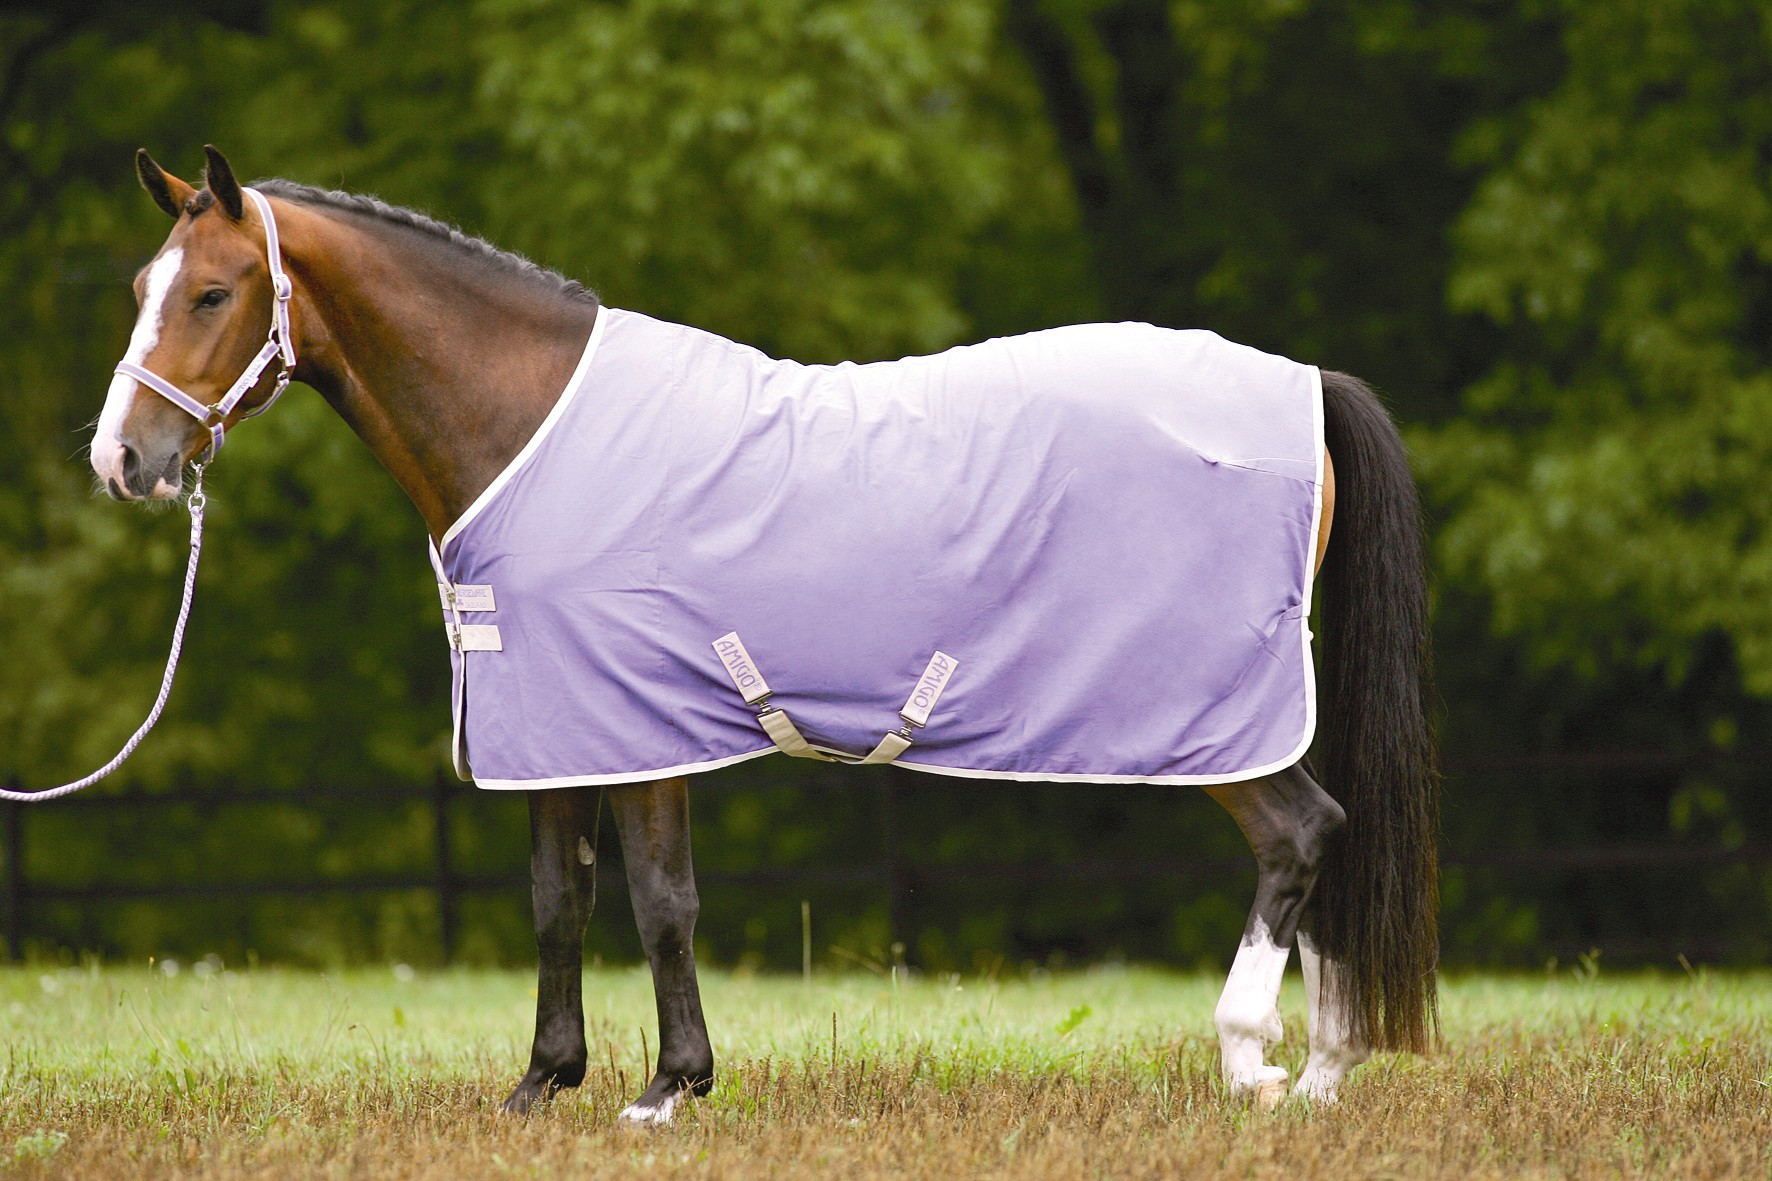 Horseware Amigo Pony Summer Sheet/Travel Rug